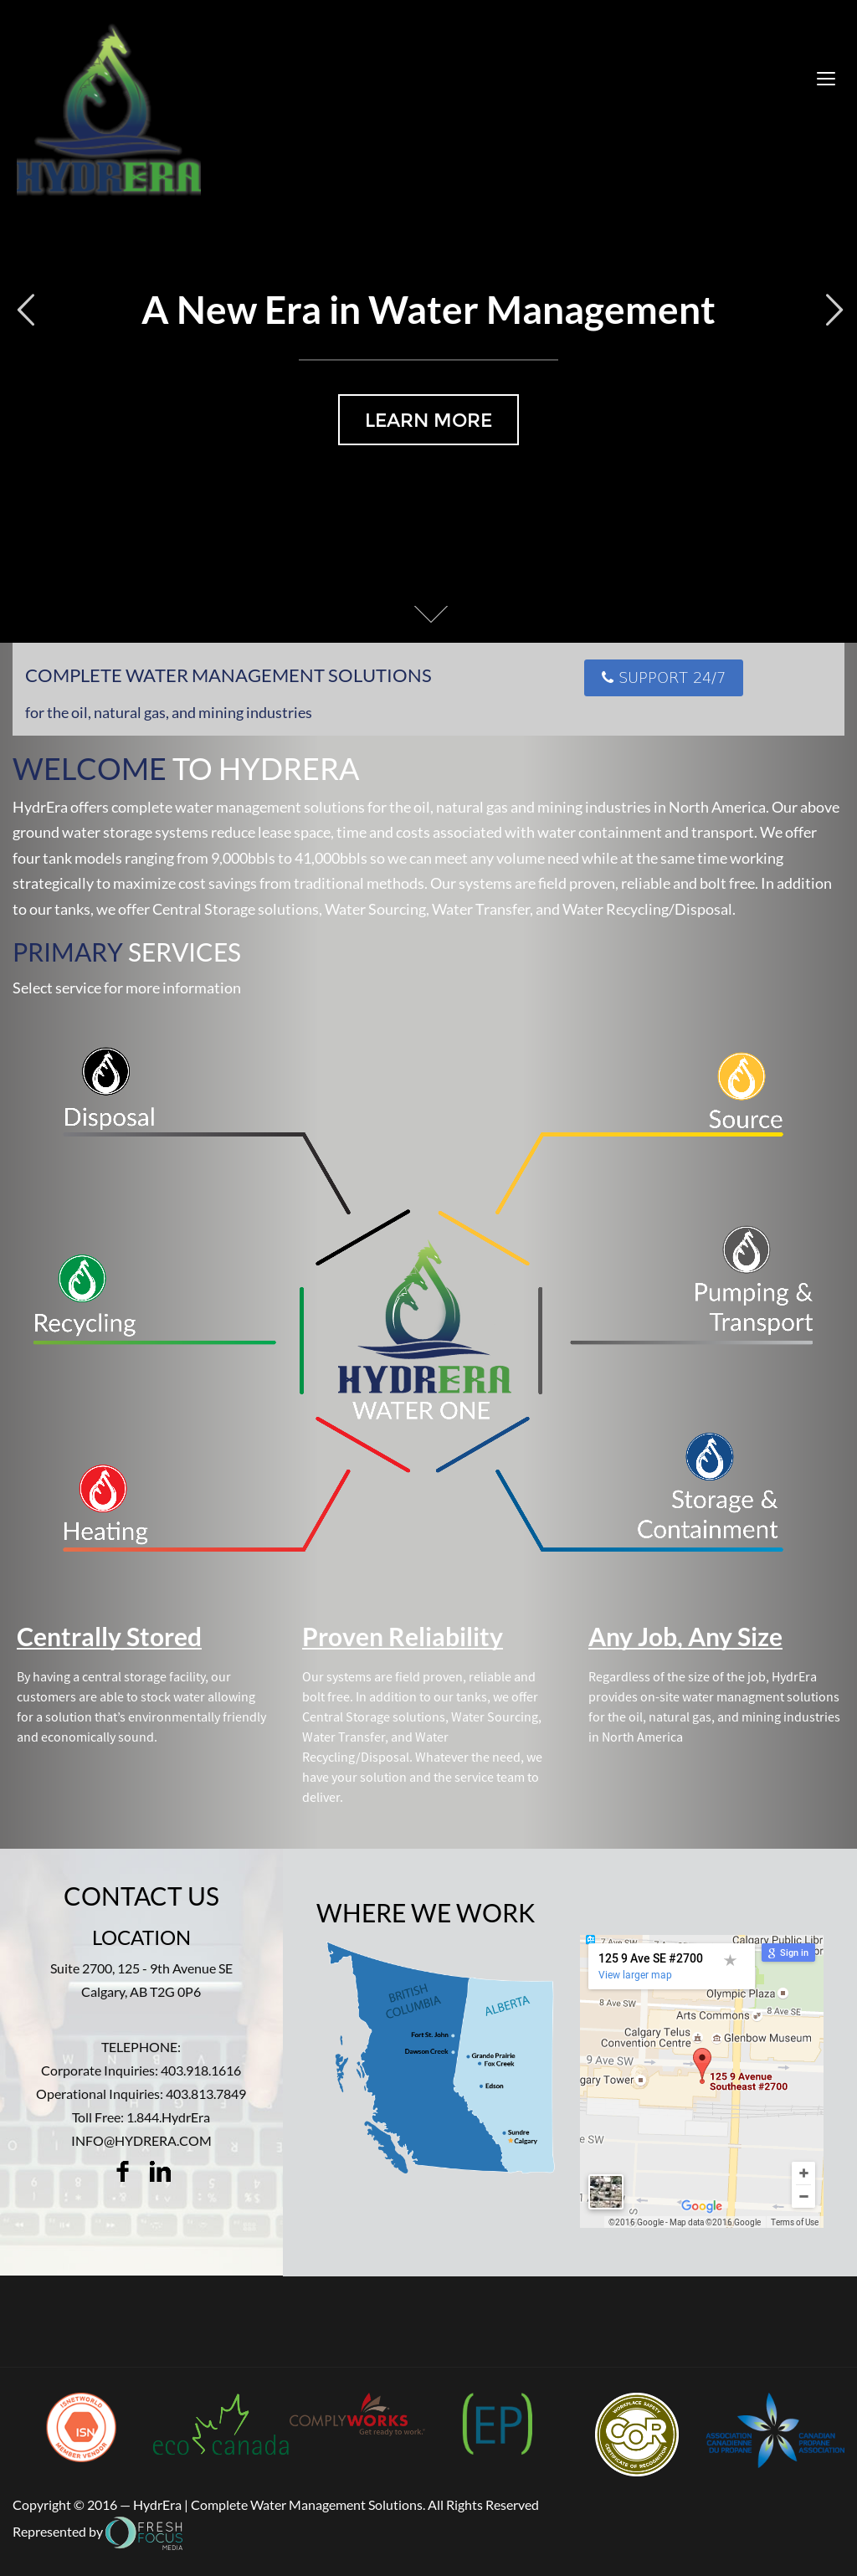 Hydrera Energy Services Competitors, Revenue and Employees